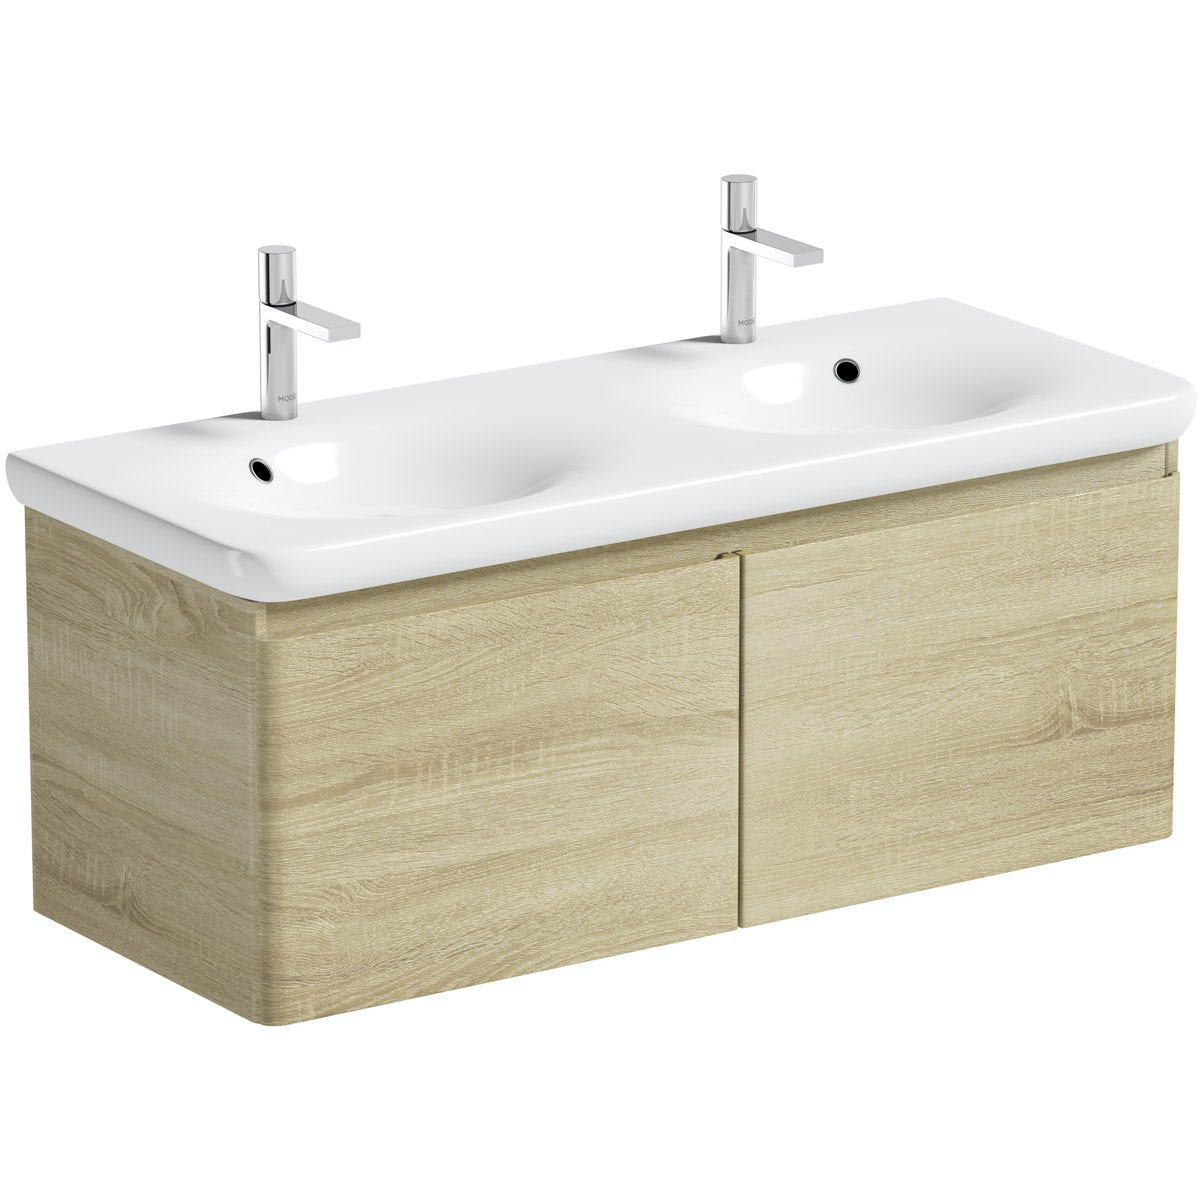 Mode Heath oak wall hung vanity unit and basin 1200mm